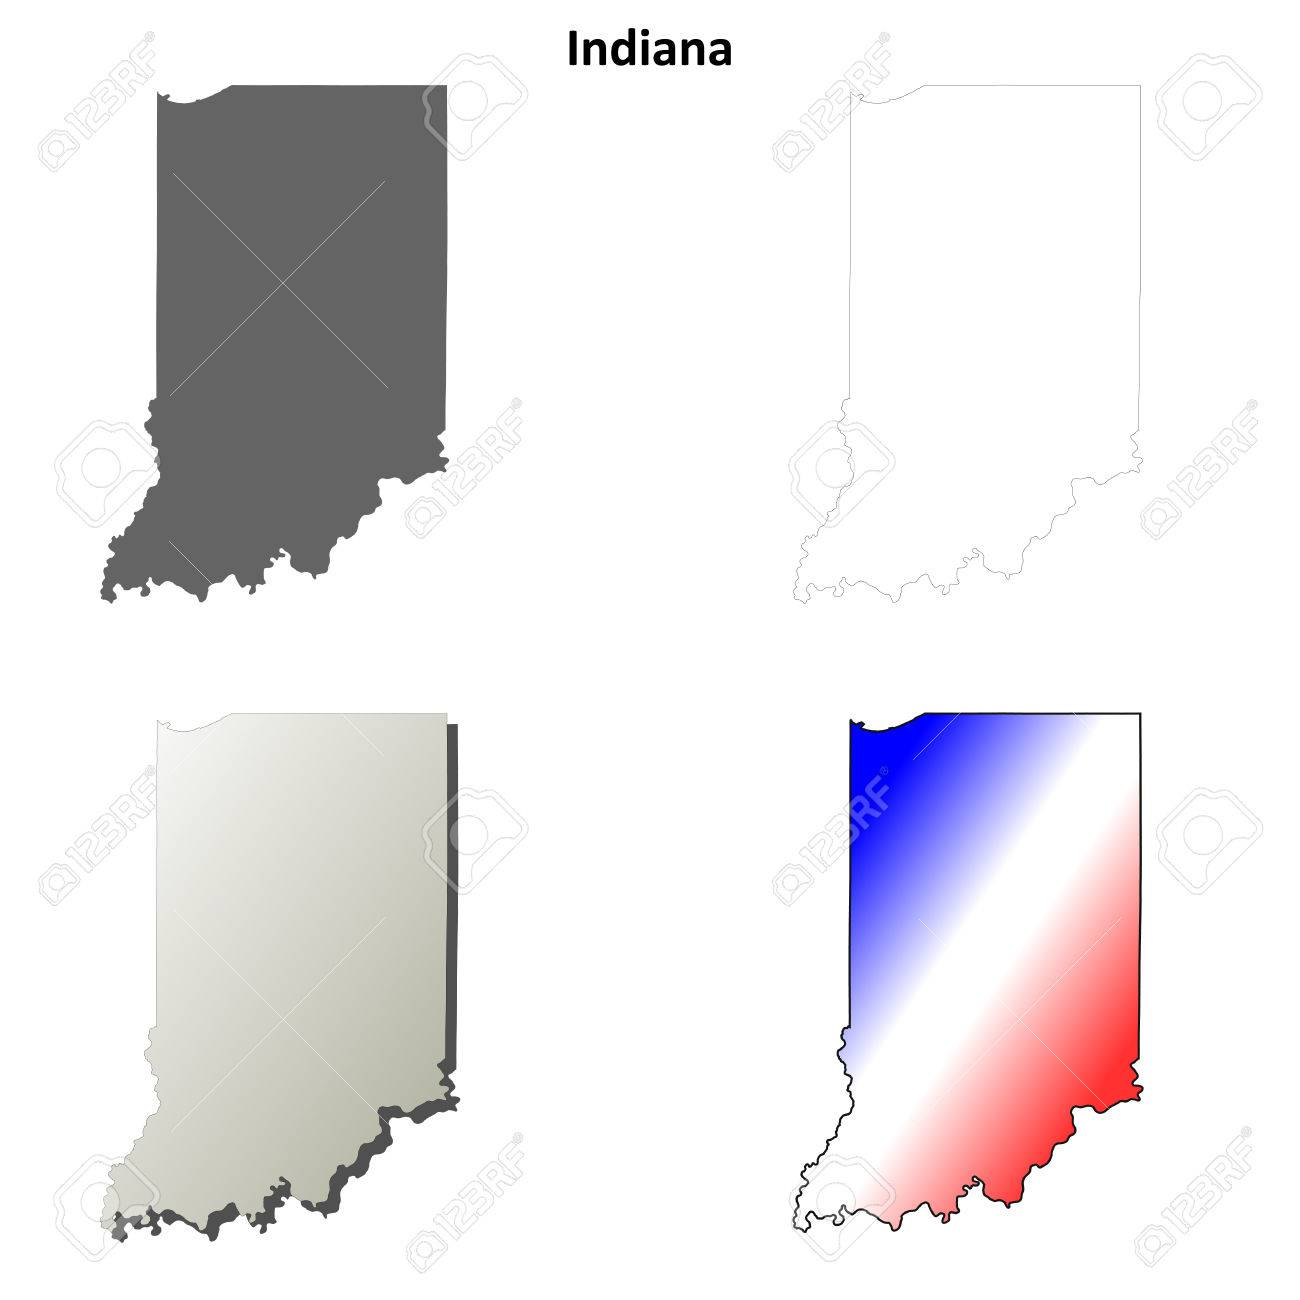 Indiana state blank vector outline map set on indiana state outline eps, indiana state flower, california state outline, indiana state geography, new orleans map outline, indiana outline vector, indiana state outline clip art, kentucky state shape outline, alabama map outline, tennessee map outline, mo state outline, indiana state highest point, columbian exchange map outline, ohio state outline, indiana state shape, indiana city outline, south florida map outline, houston map outline, cincinnati map outline, aztec empire map outline,